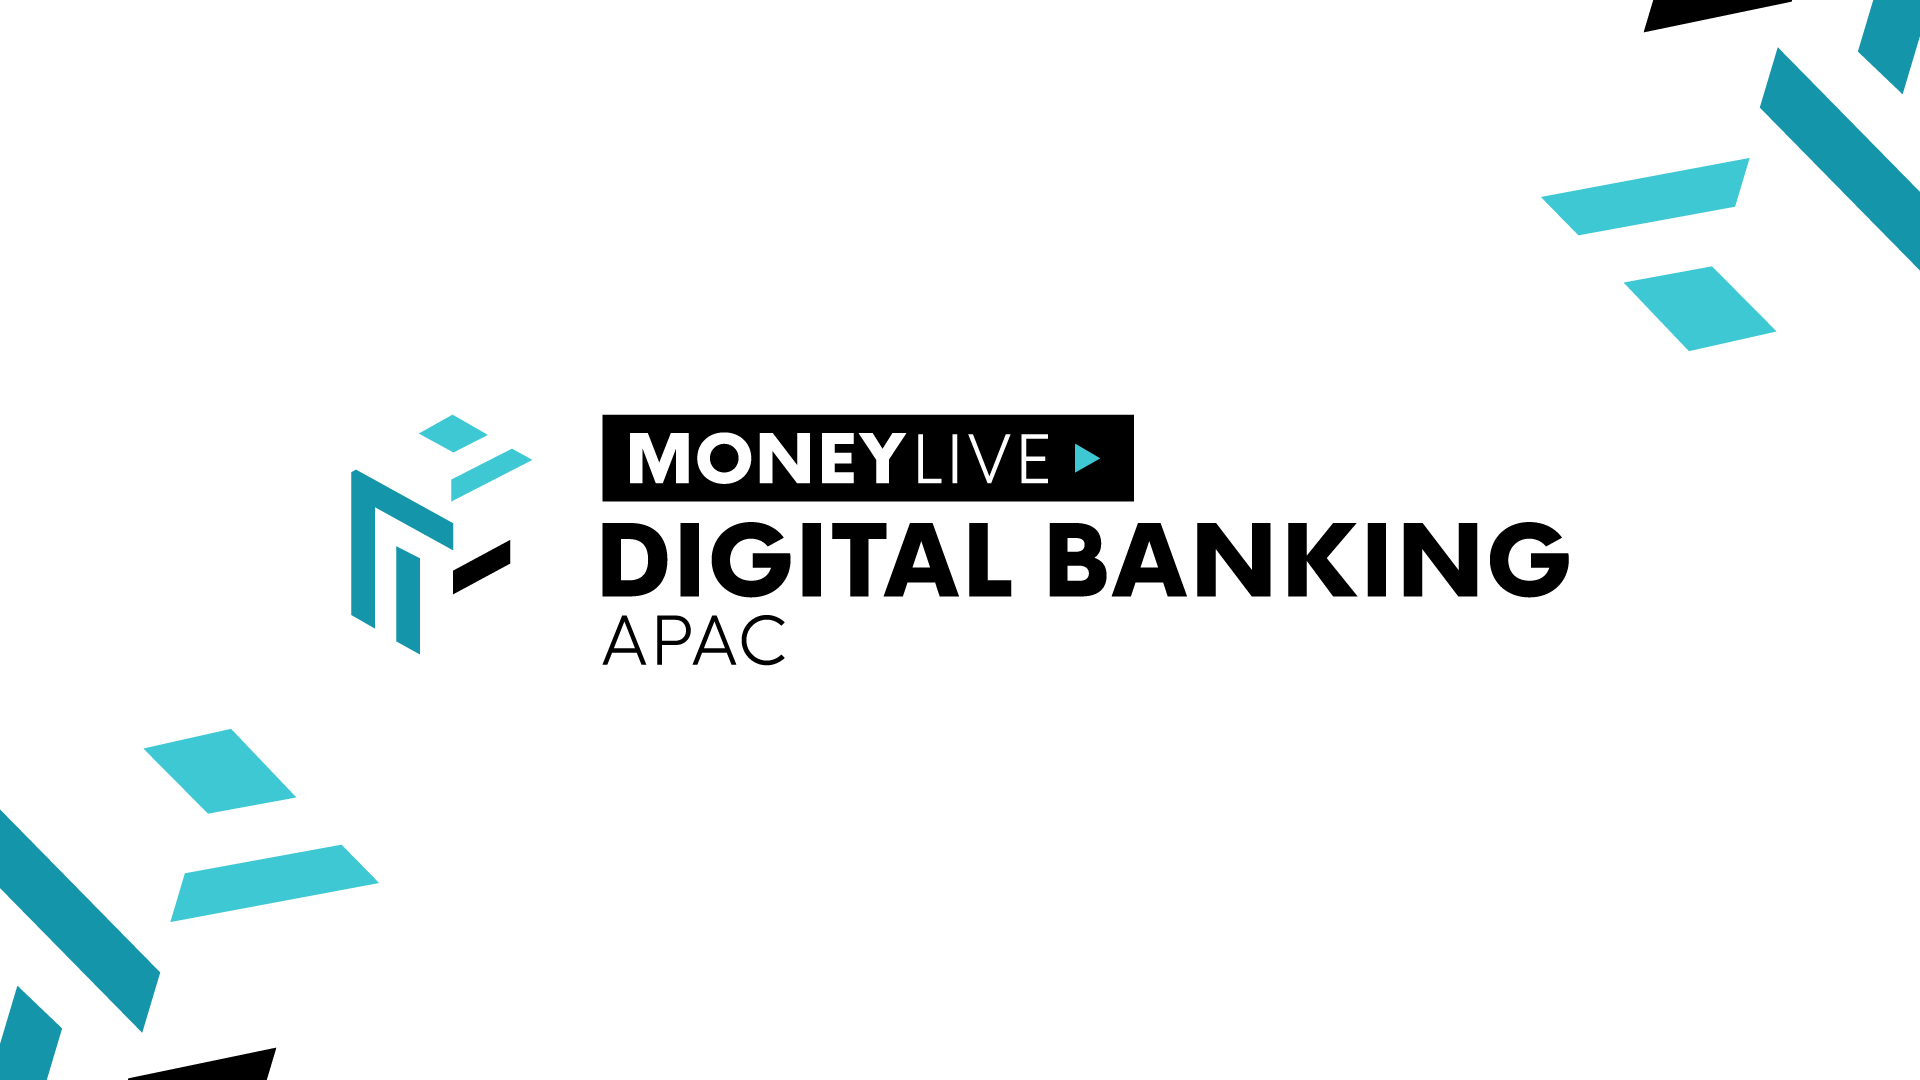 MoneyLIVE: Digital Banking APAC 2019 | Digital Banking Event APAC